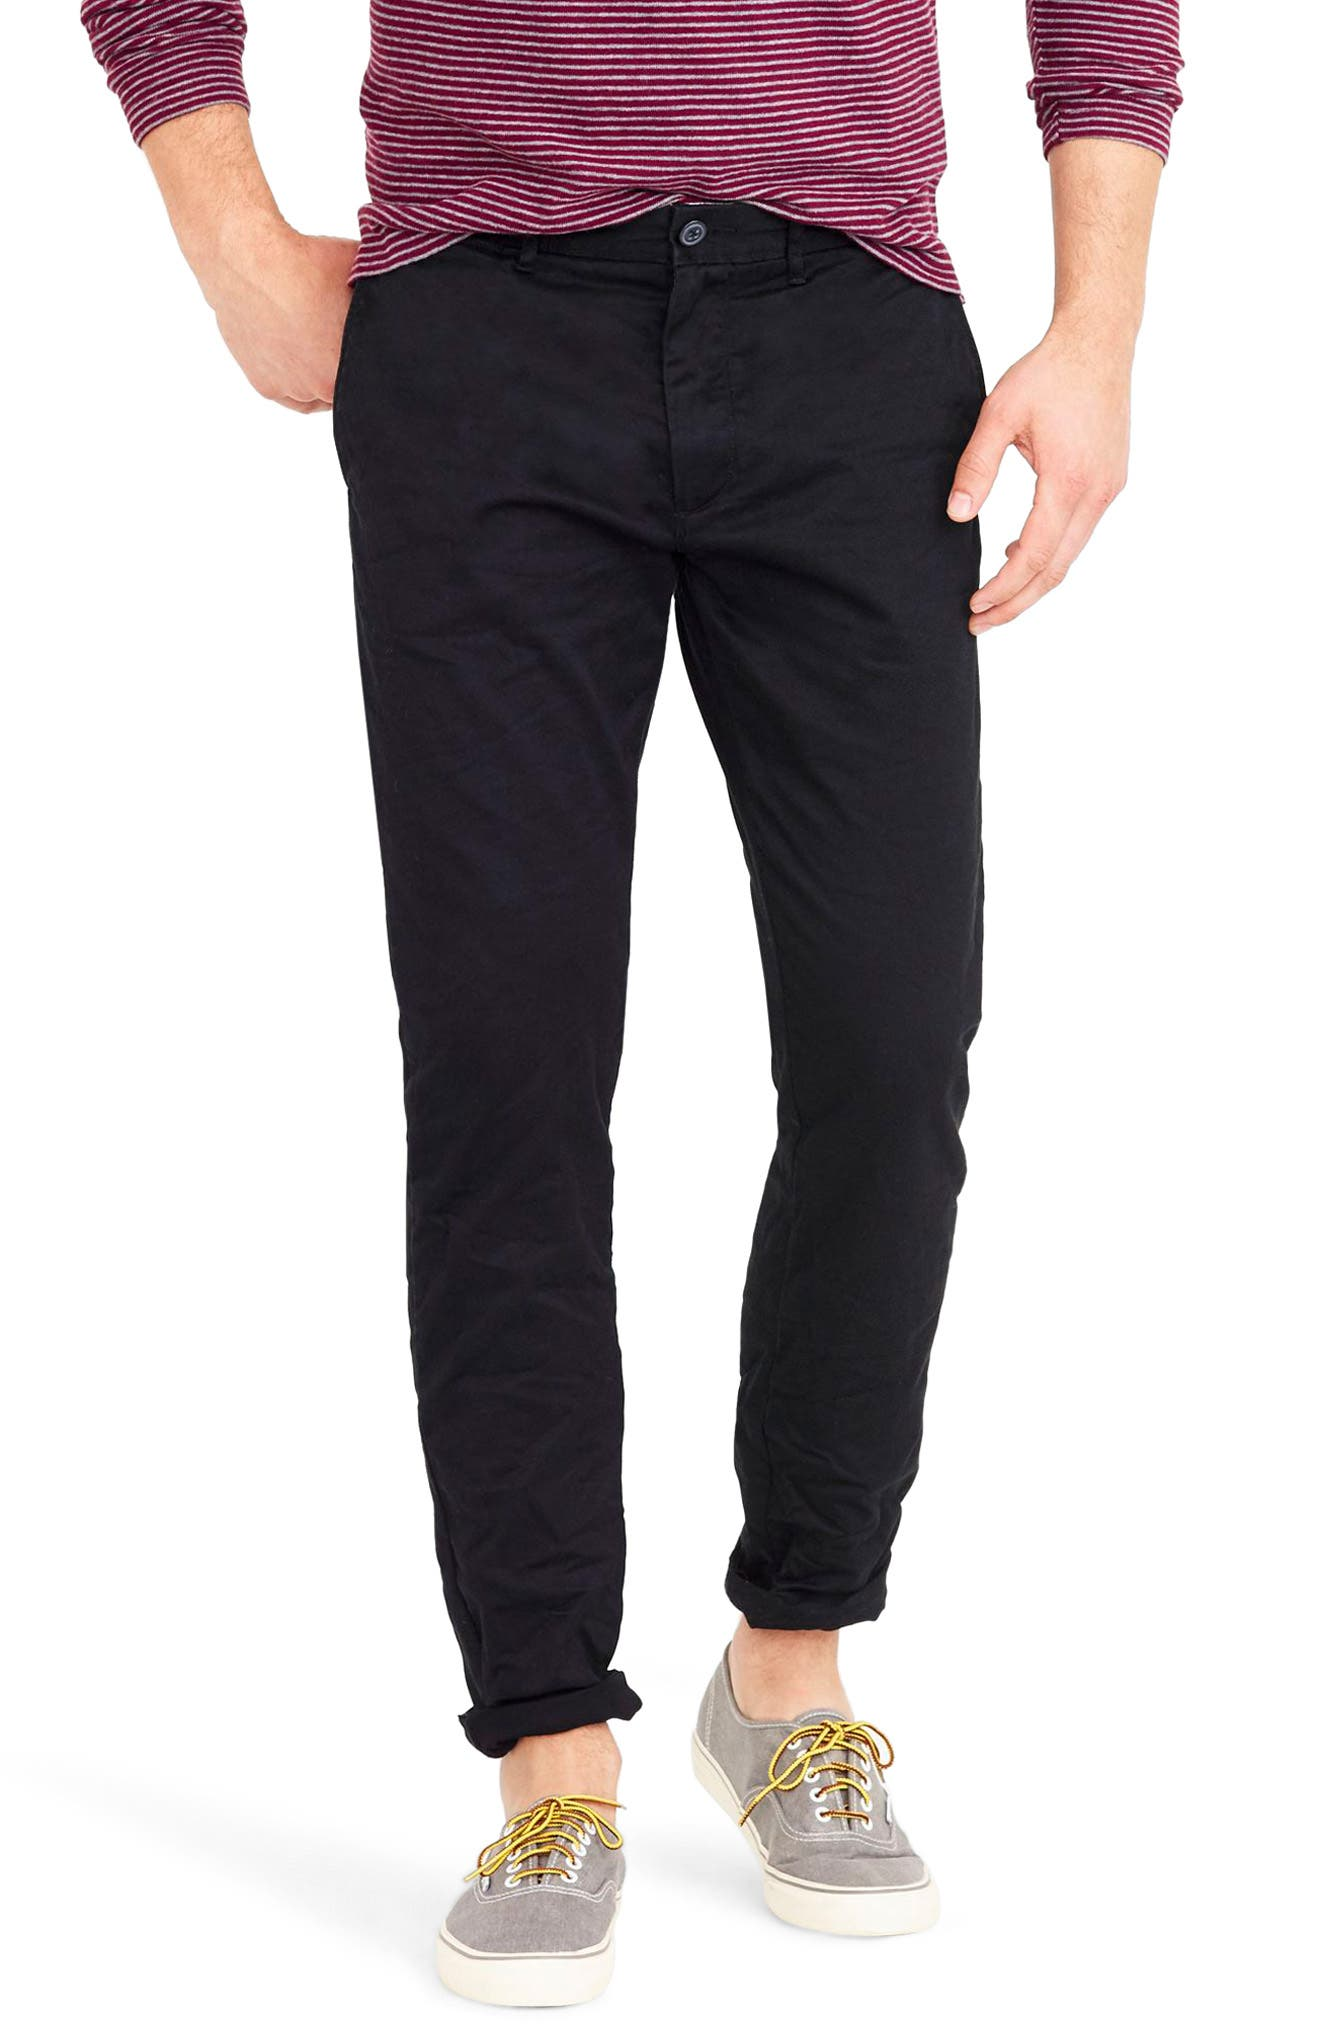 484 Slim Fit Stretch Chino Pants,                         Main,                         color,